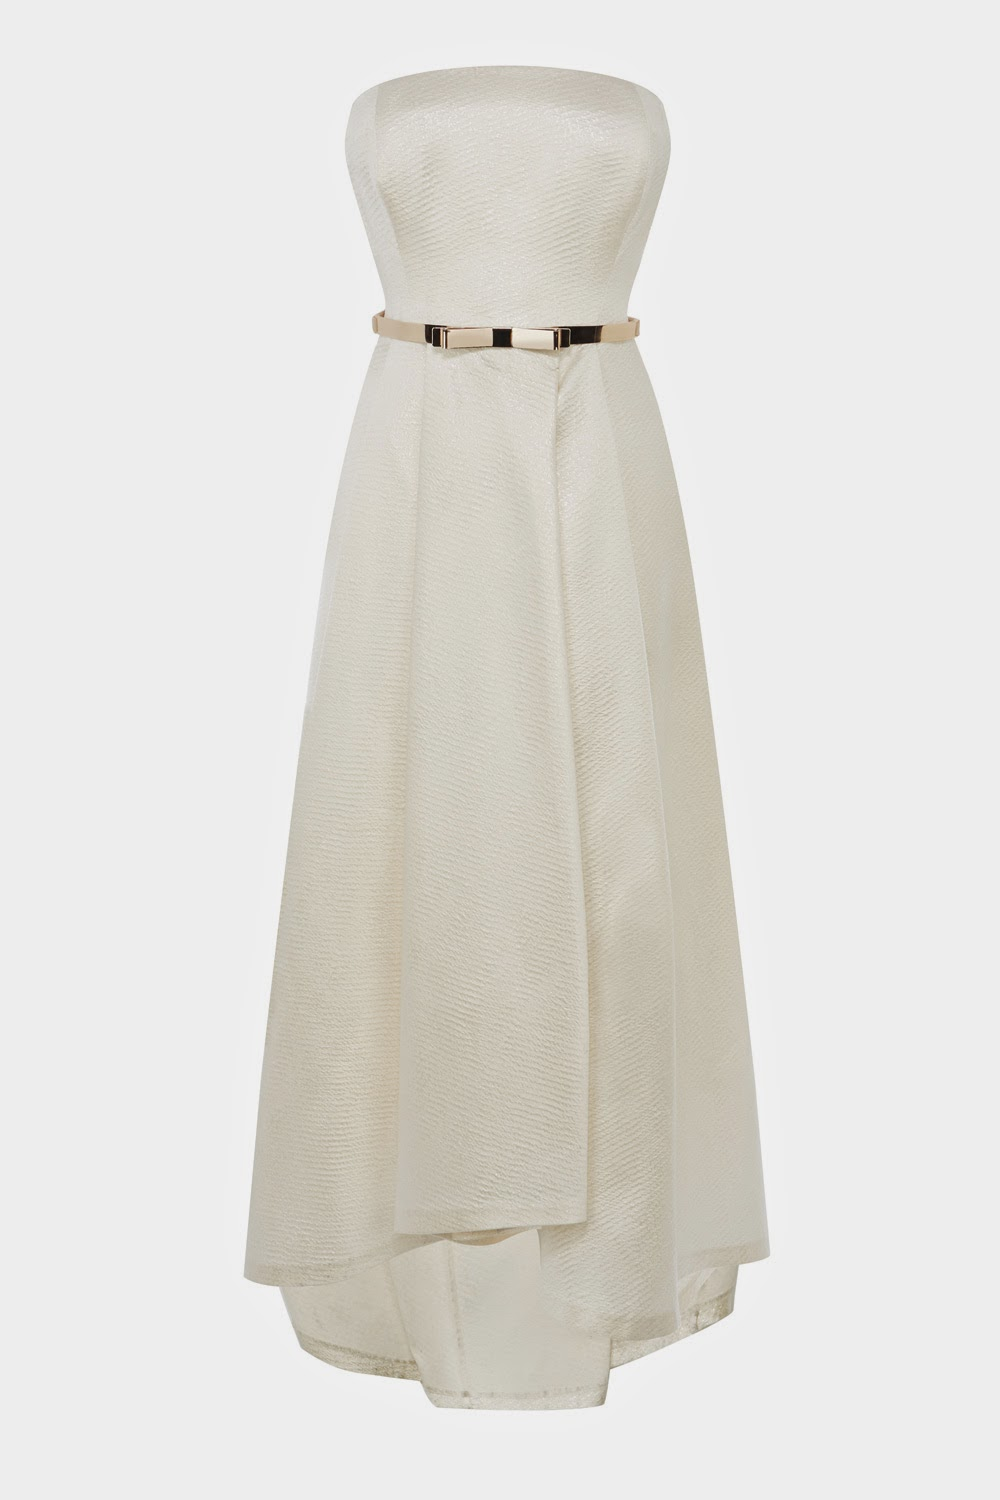 Maddison Dress - Coast